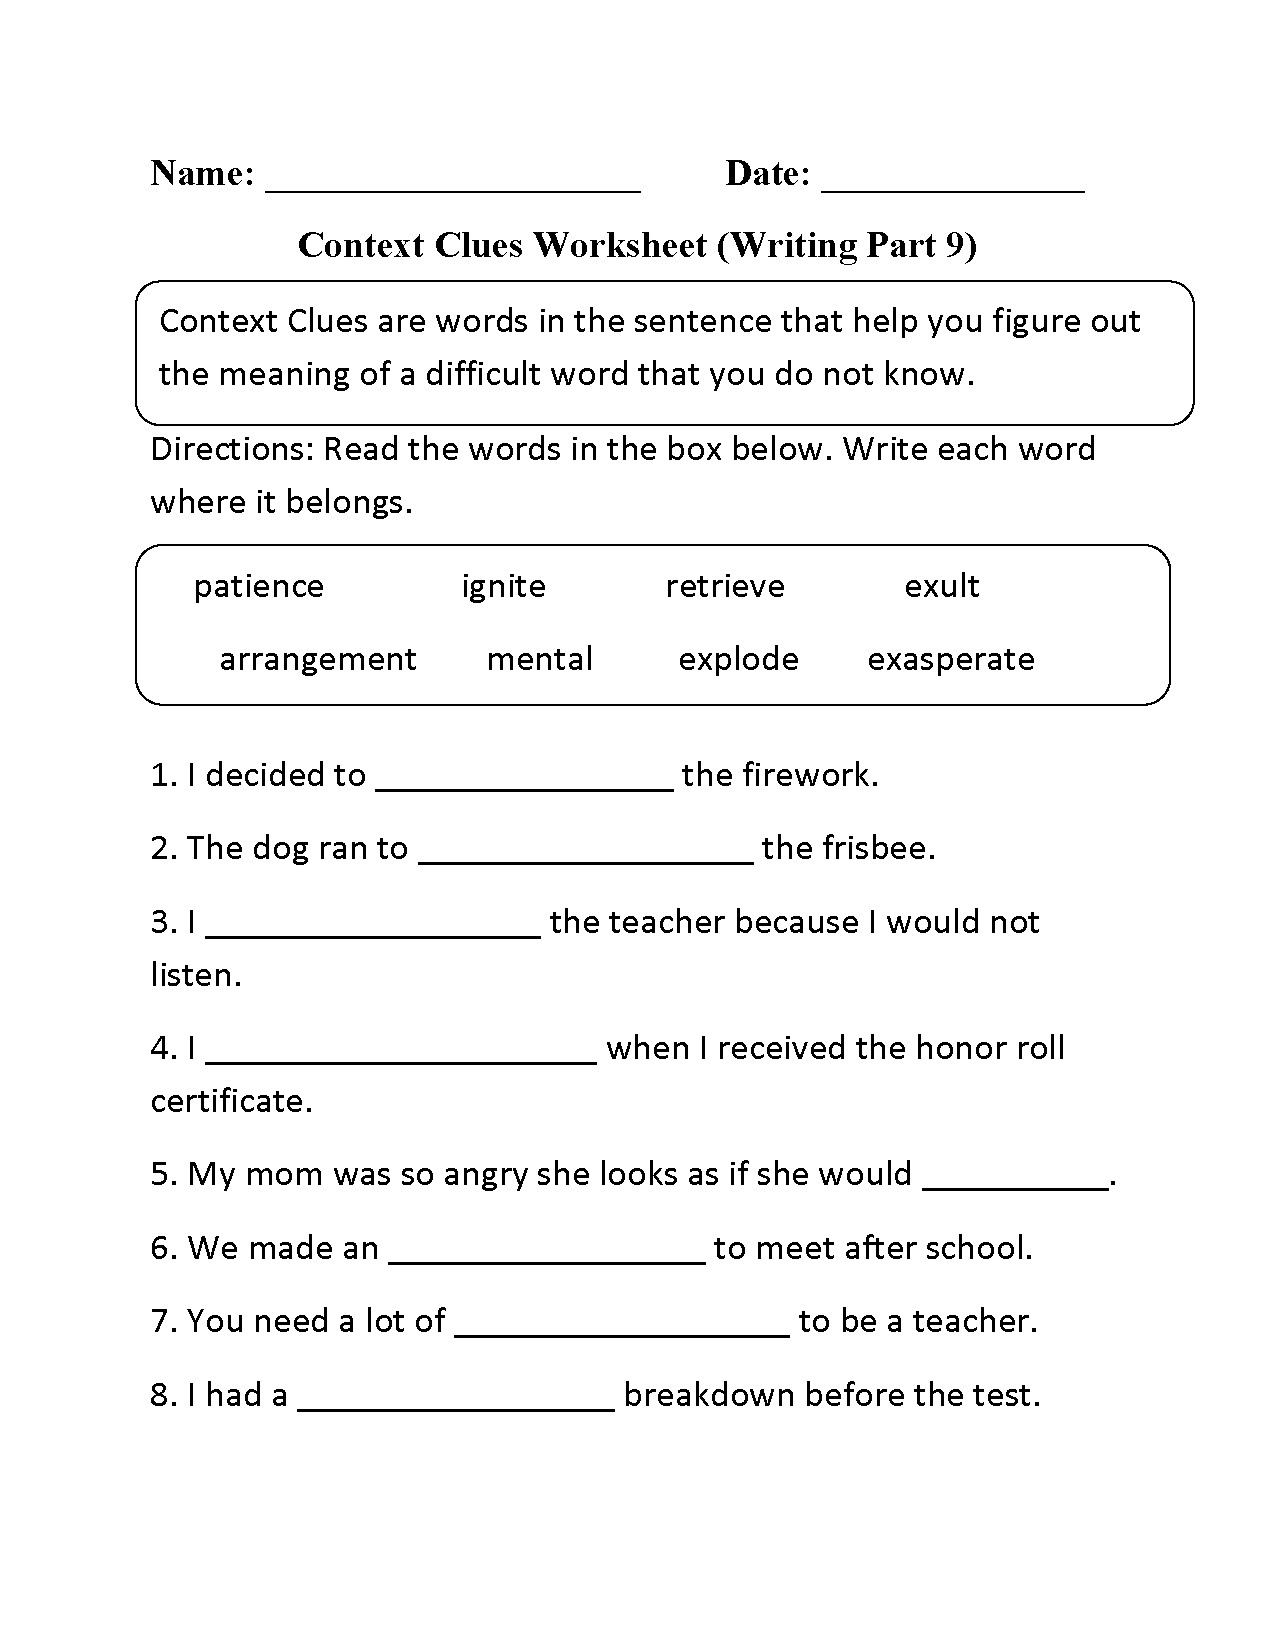 Context Clues Worksheets Grade 5 5th Grade Context Clues Worksheets